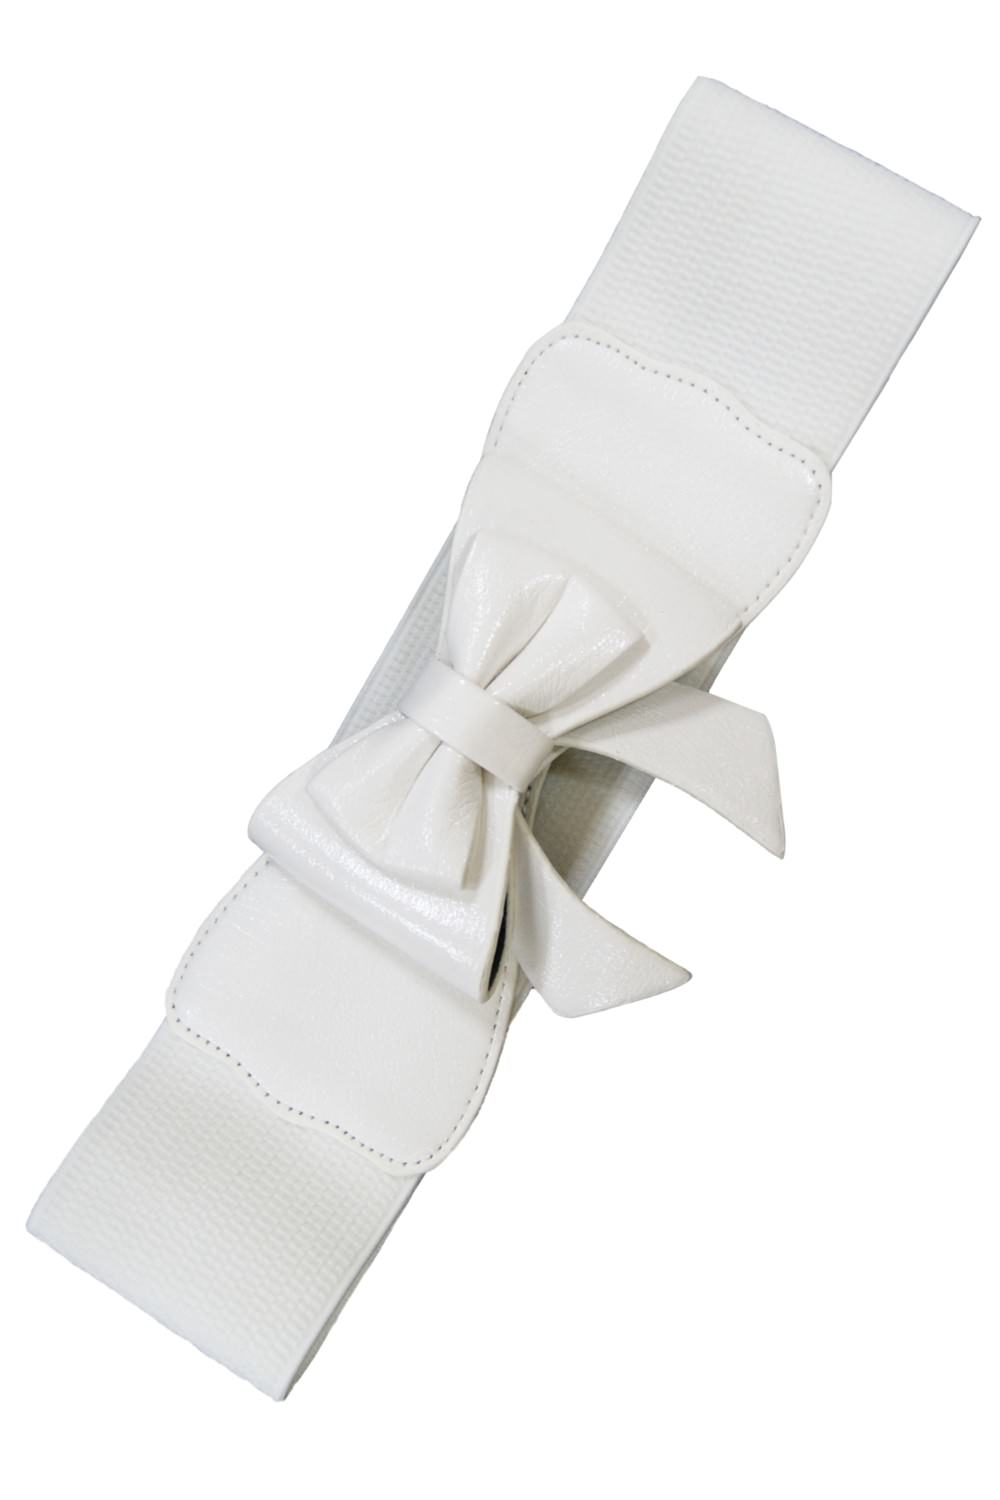 Dancing Days 50s Style Retro Elasticated Belt With Bow In White; Dancing Days; 50s Retro Style; Elasticated Belt; White Bow Design; White